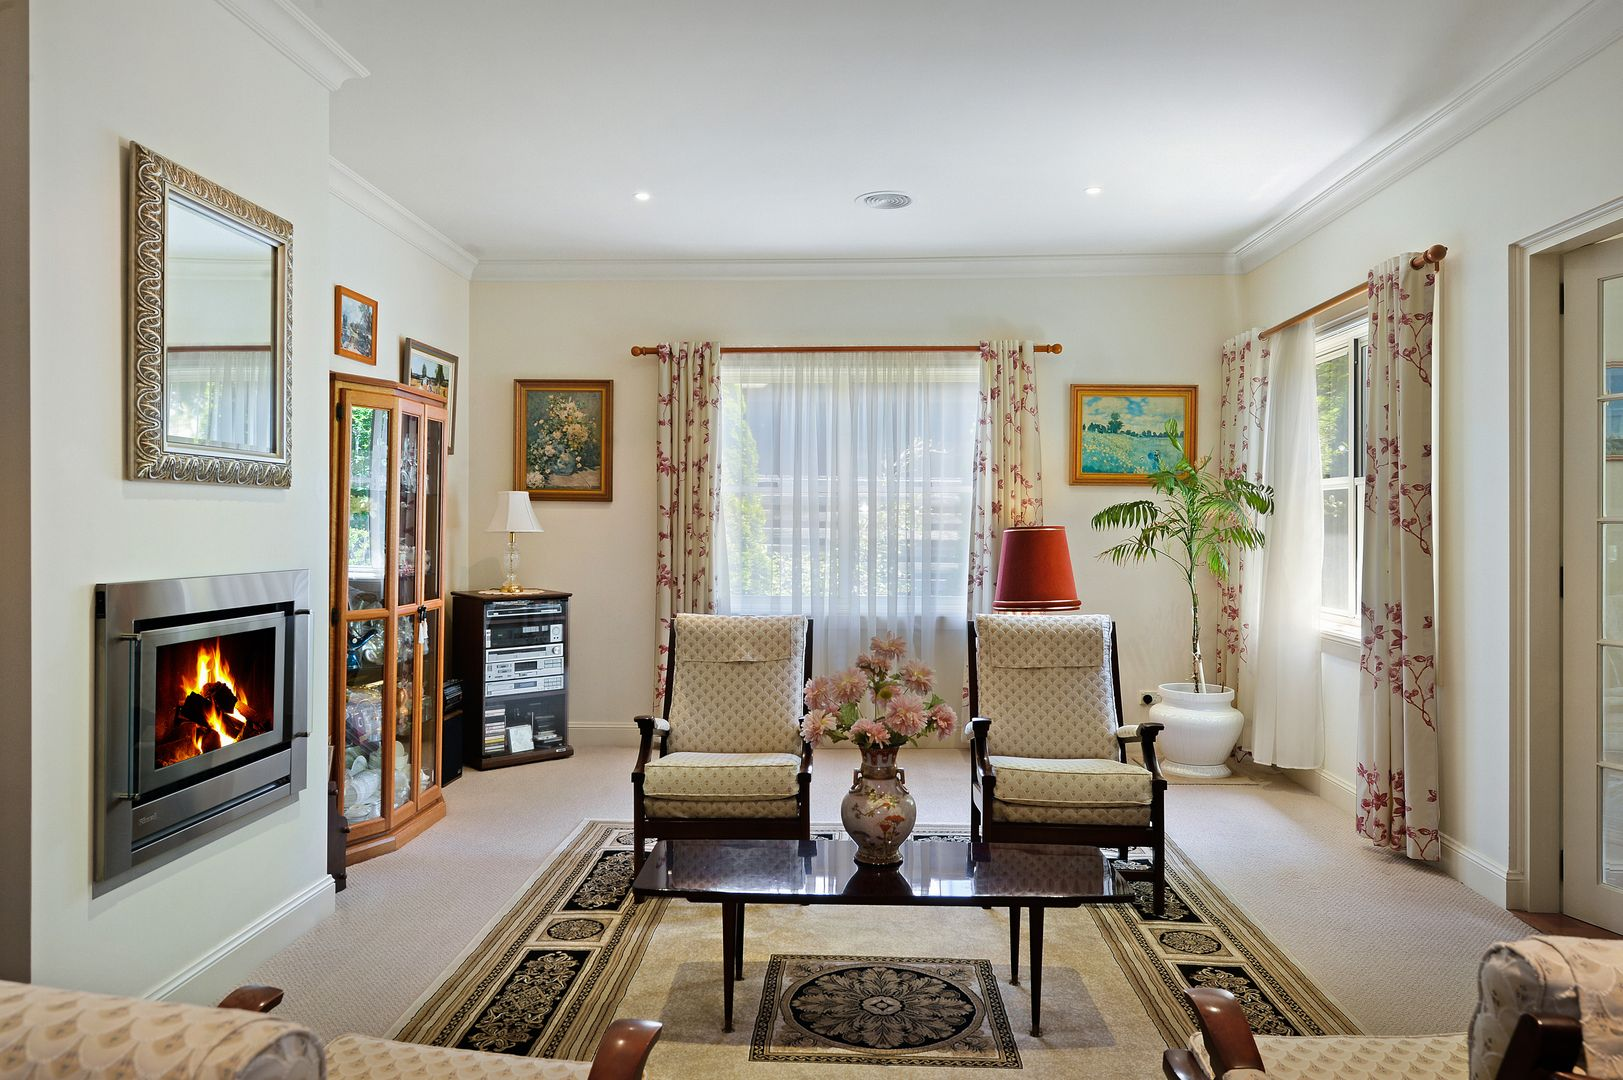 4/24 Purcell Street, Bowral NSW 2576, Image 2